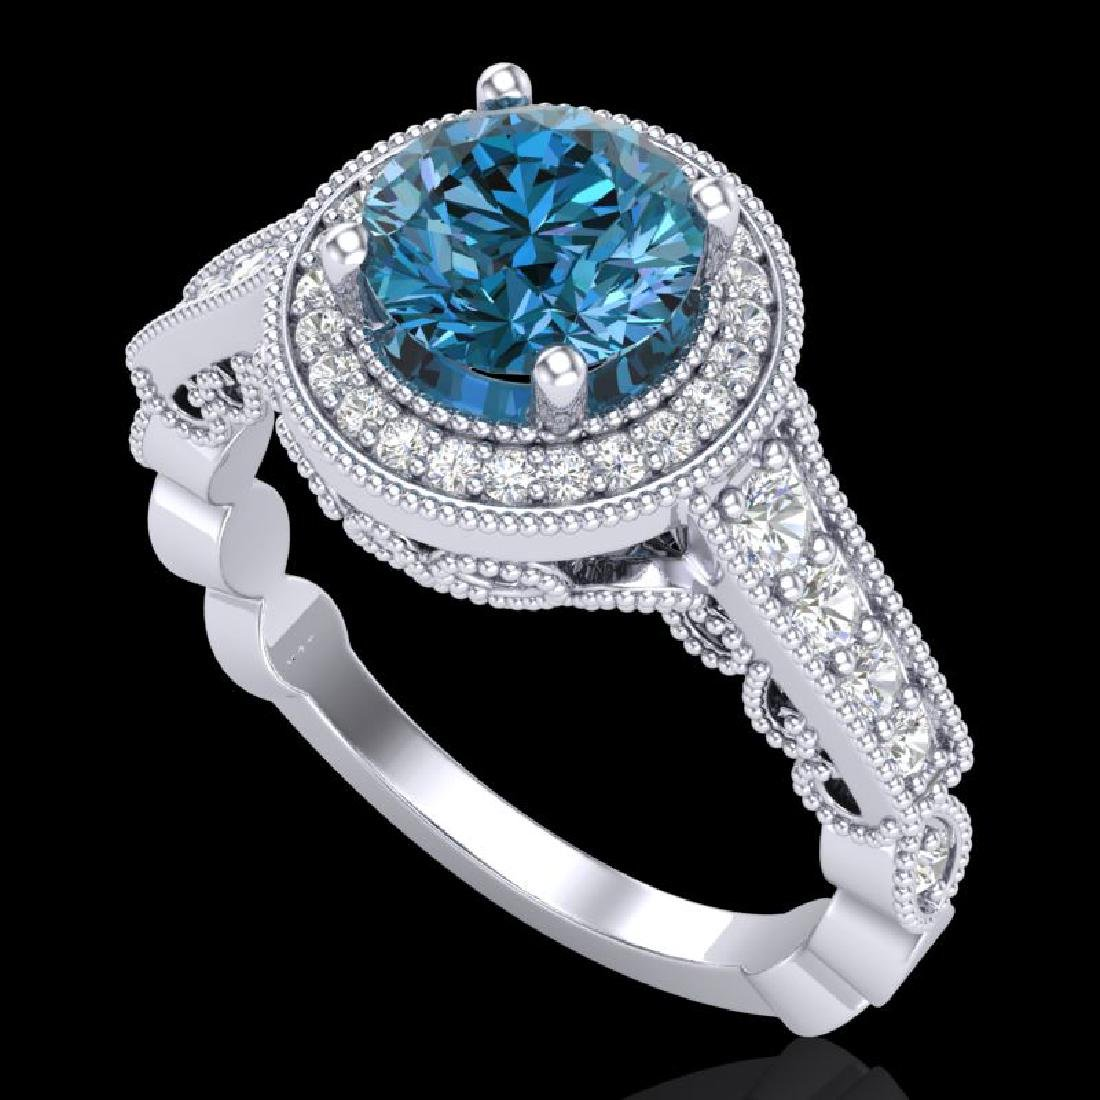 1.91 CTW Fancy Intense Blue Diamond Solitaire Art Deco